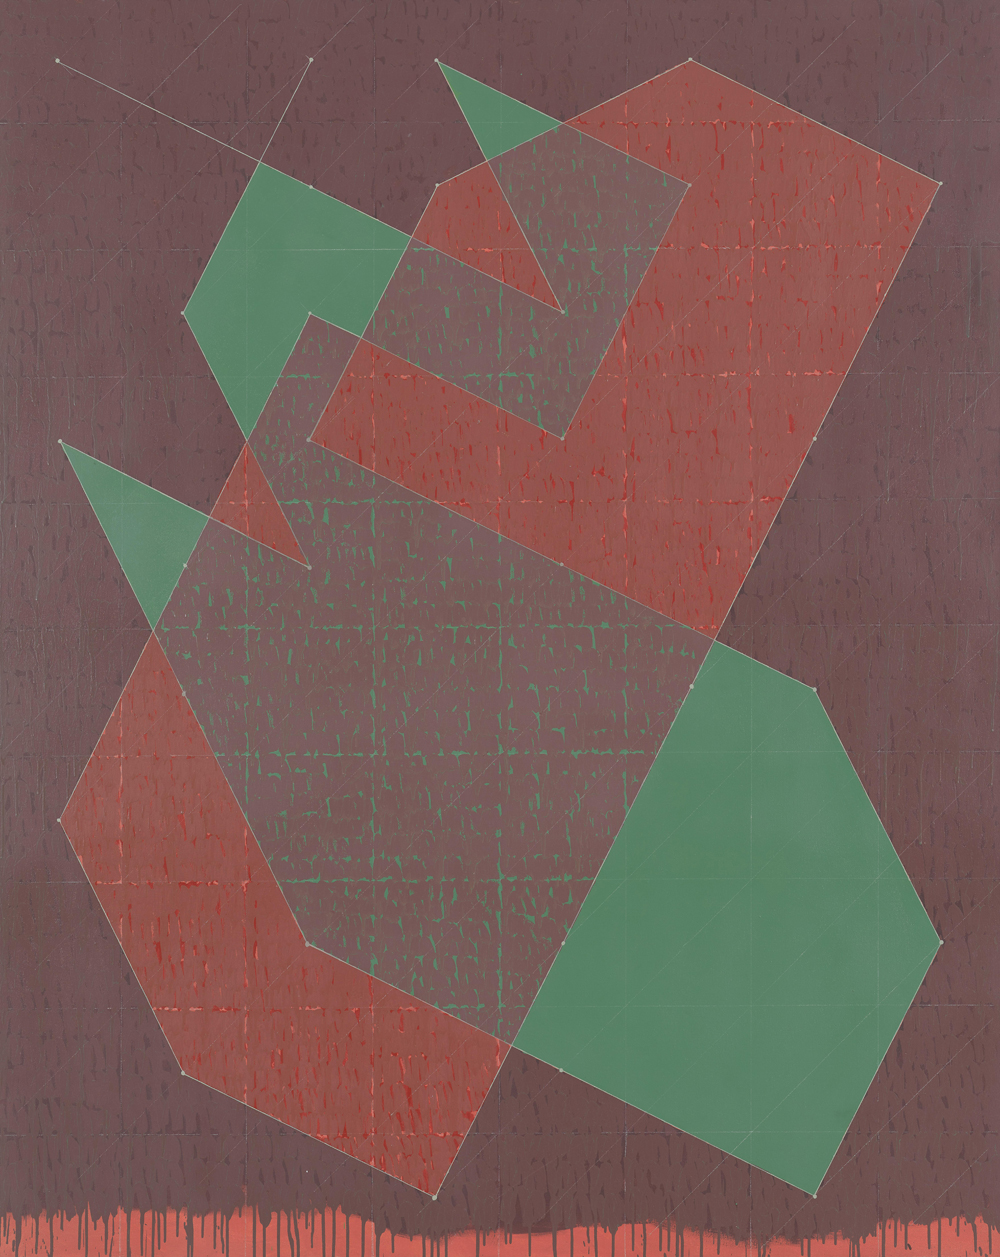 Jack Tworkov, Knight Series #8 (Q3-77 #2), 1977, oil on canvas, 90 x 72 inches (